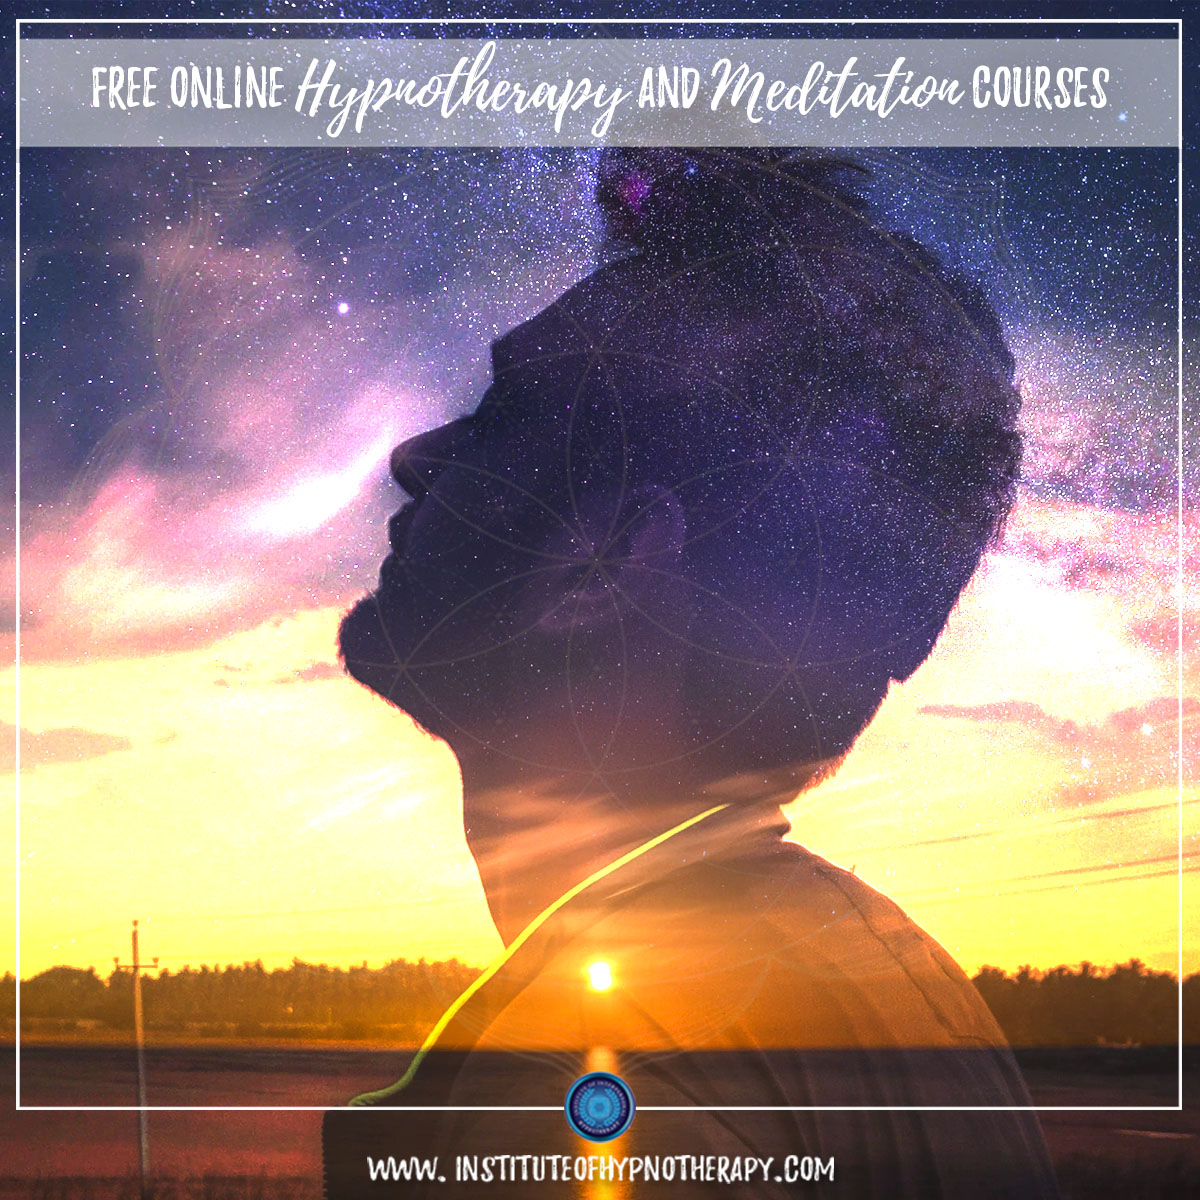 Free Online Hypnotherapy and Meditation Courses